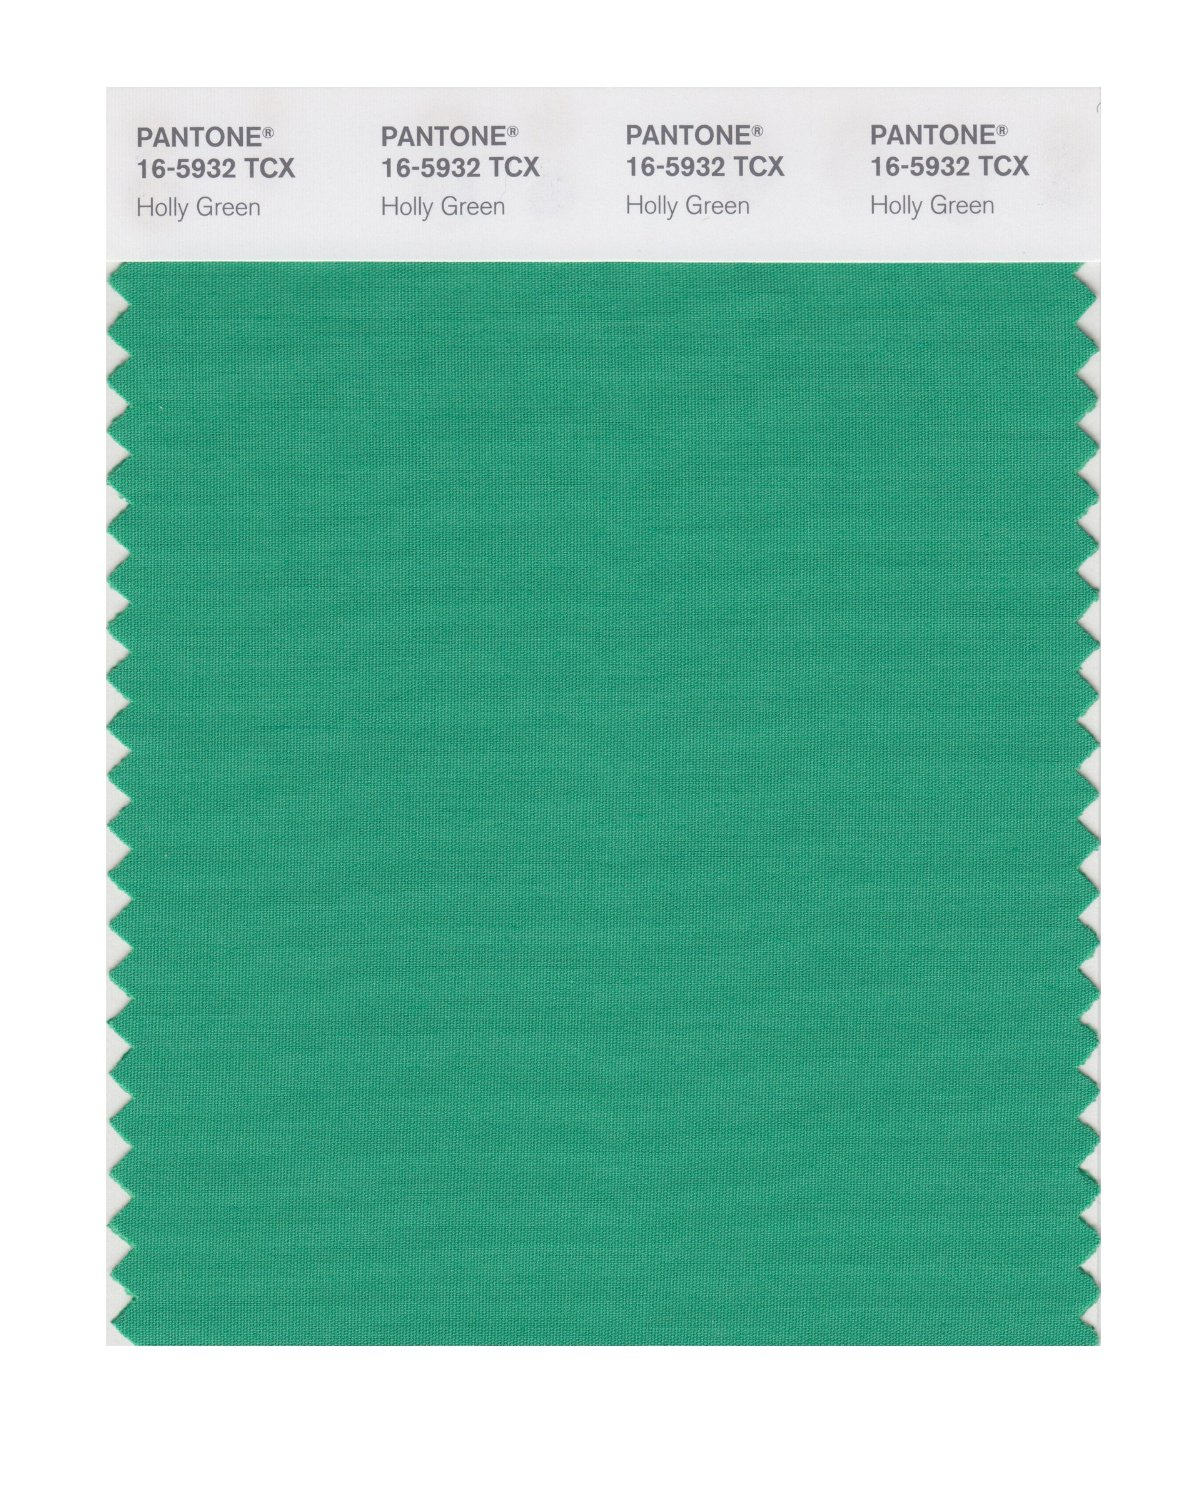 Pantone Smart Swatch 16-5932 Holly Green